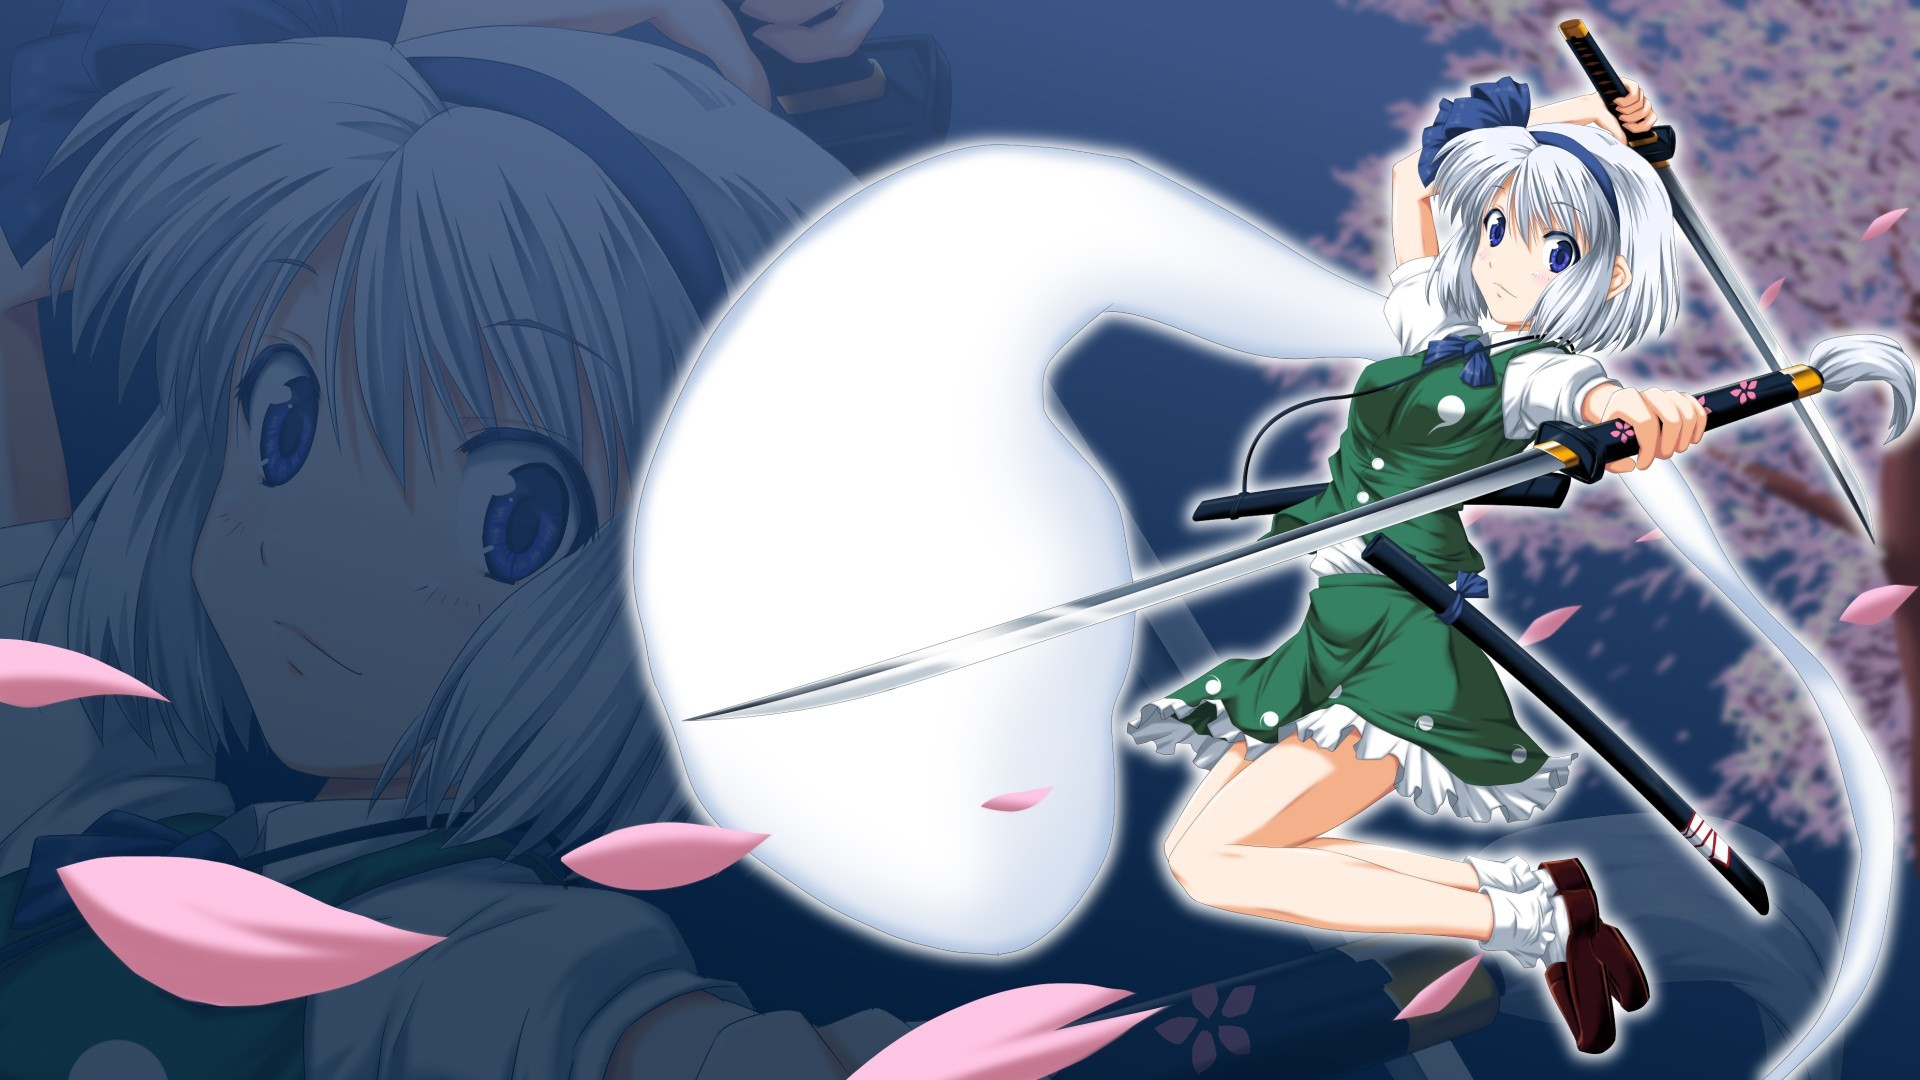 touhou konpaku youmu Swords HD Wallpaper